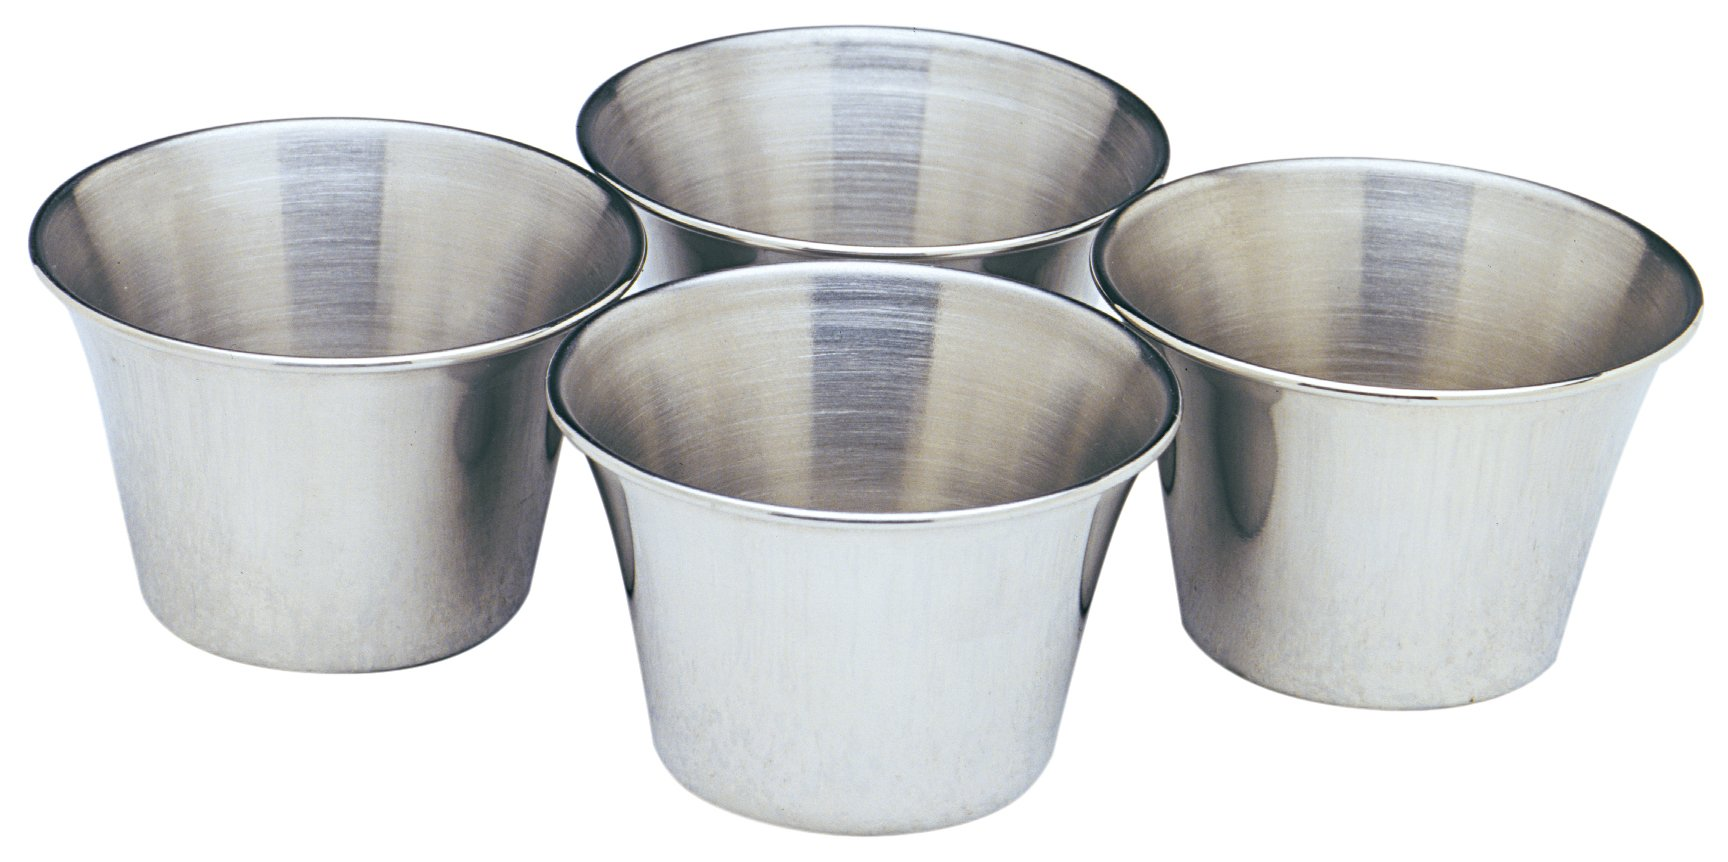 Norpro Stainless Steel Sauce Cups, Set of 4